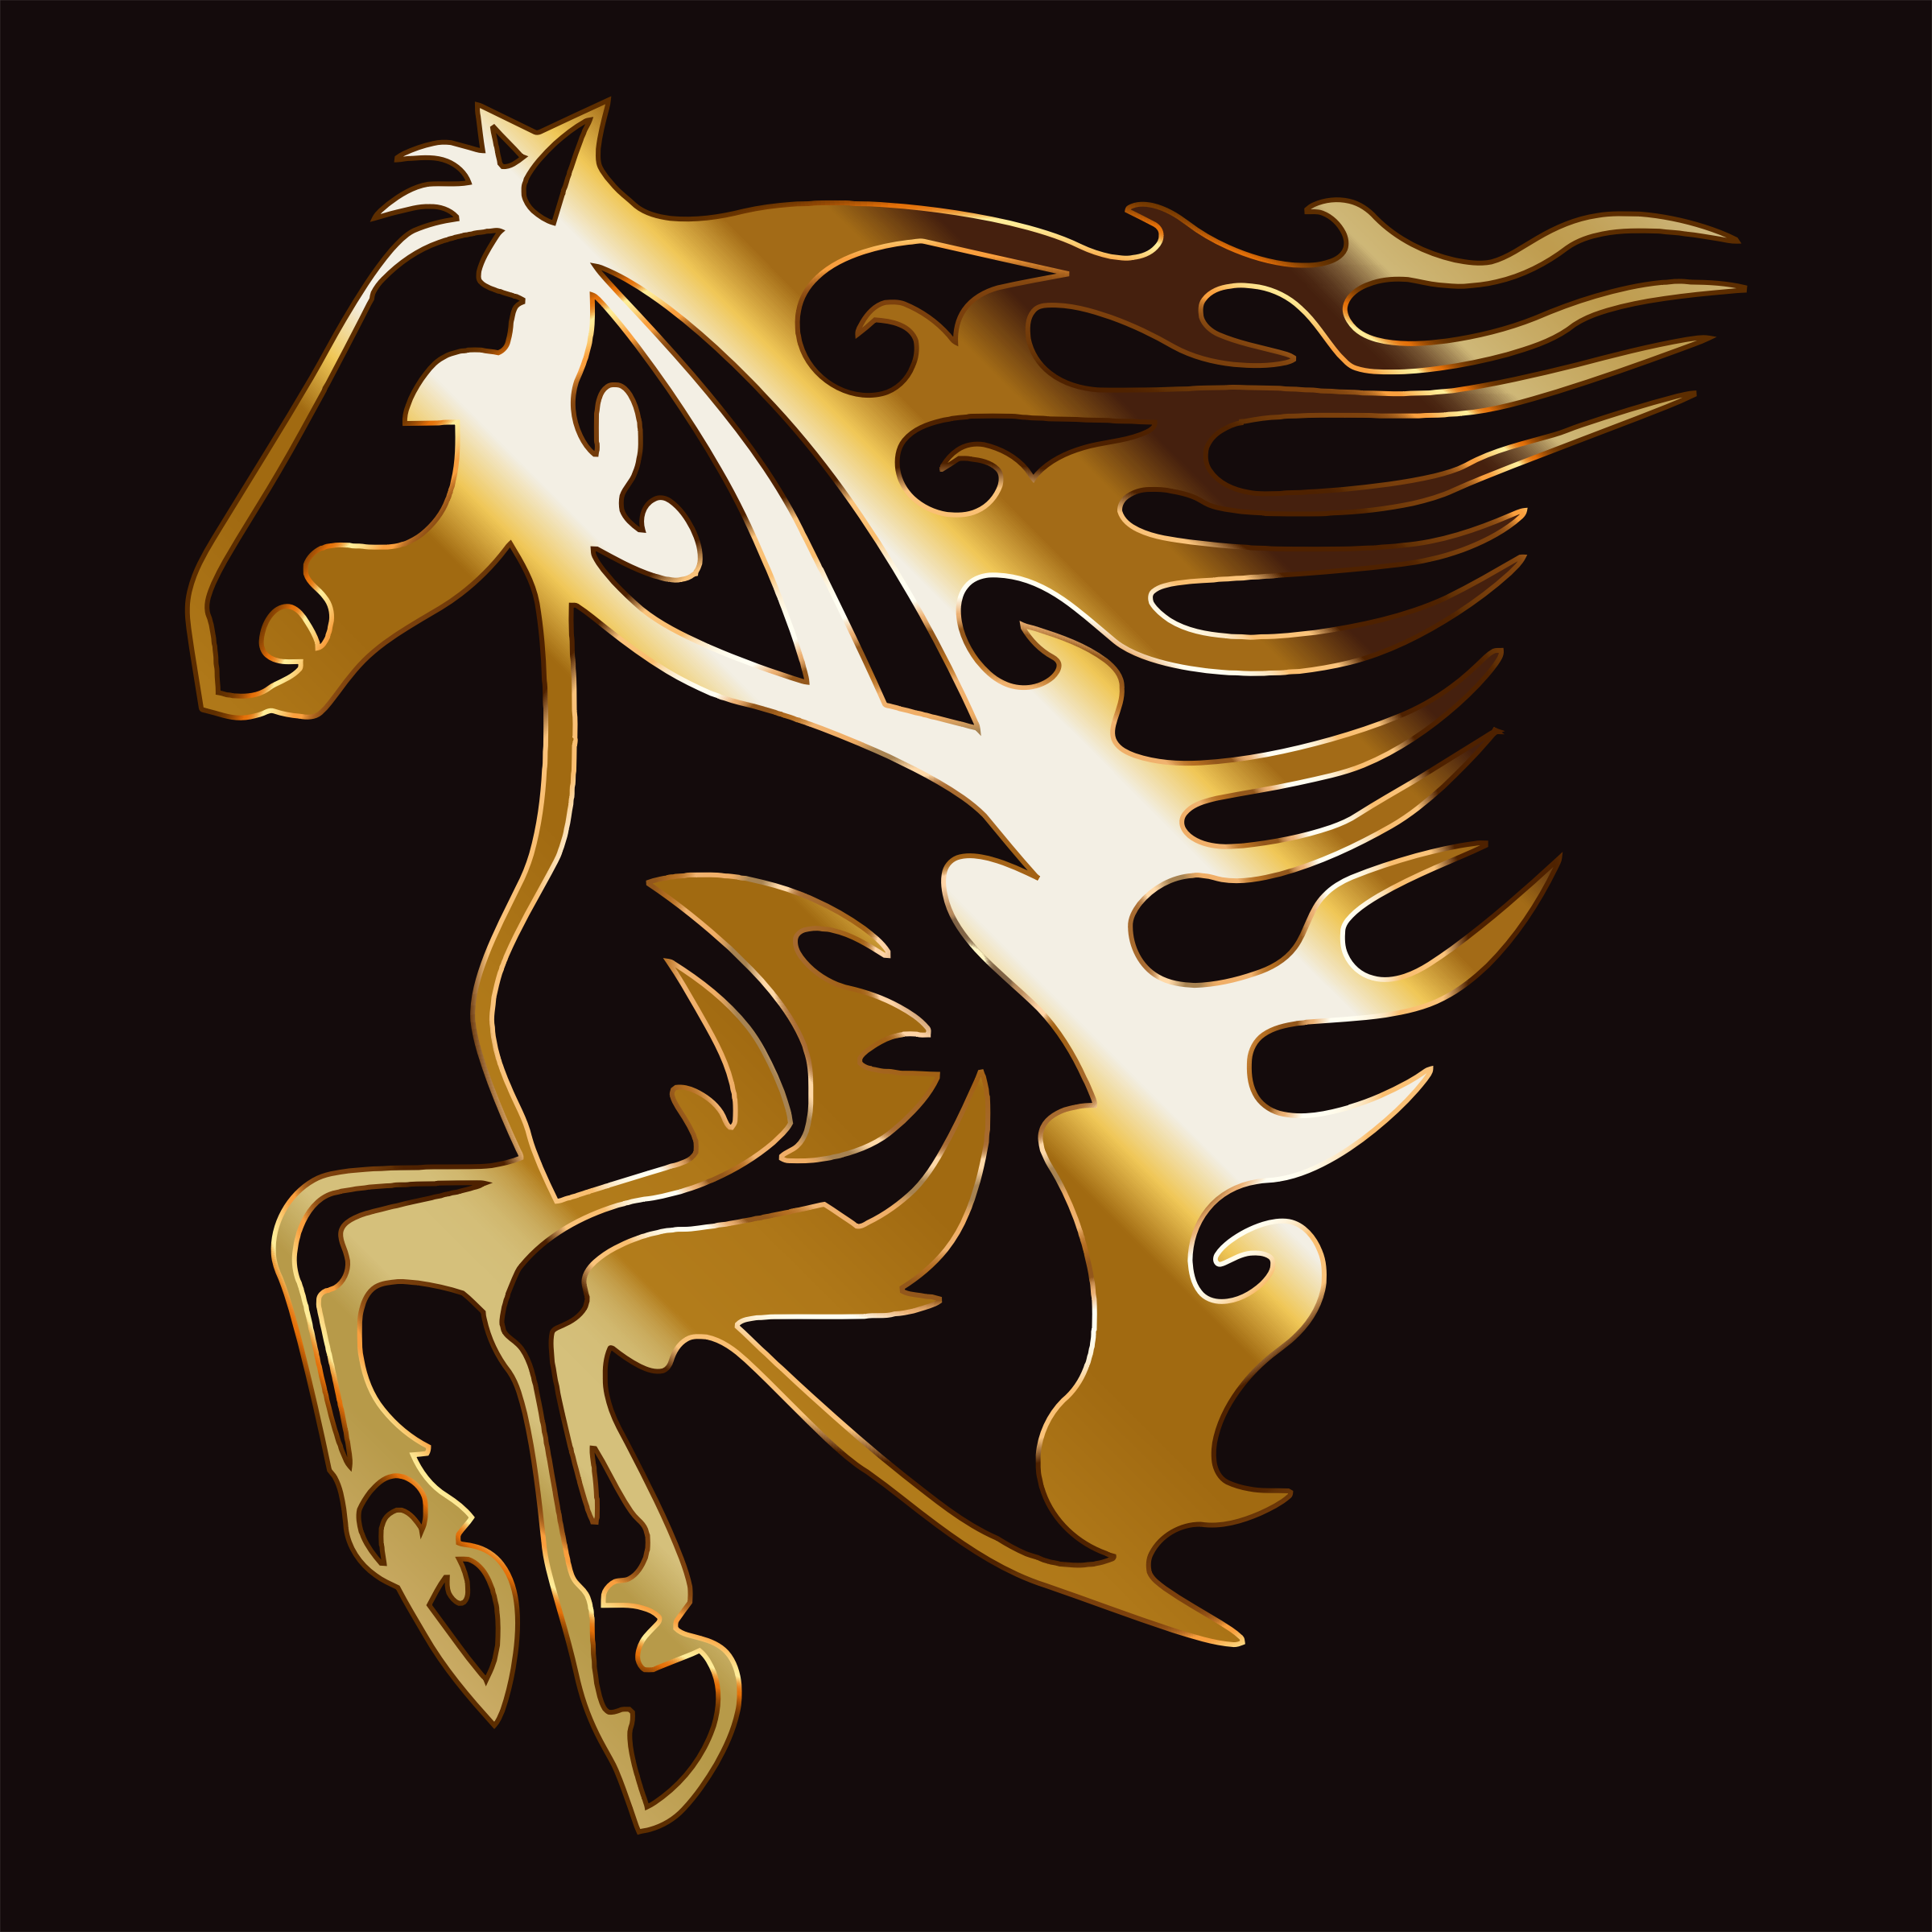 Golden Flame Horse 7 by GDJ